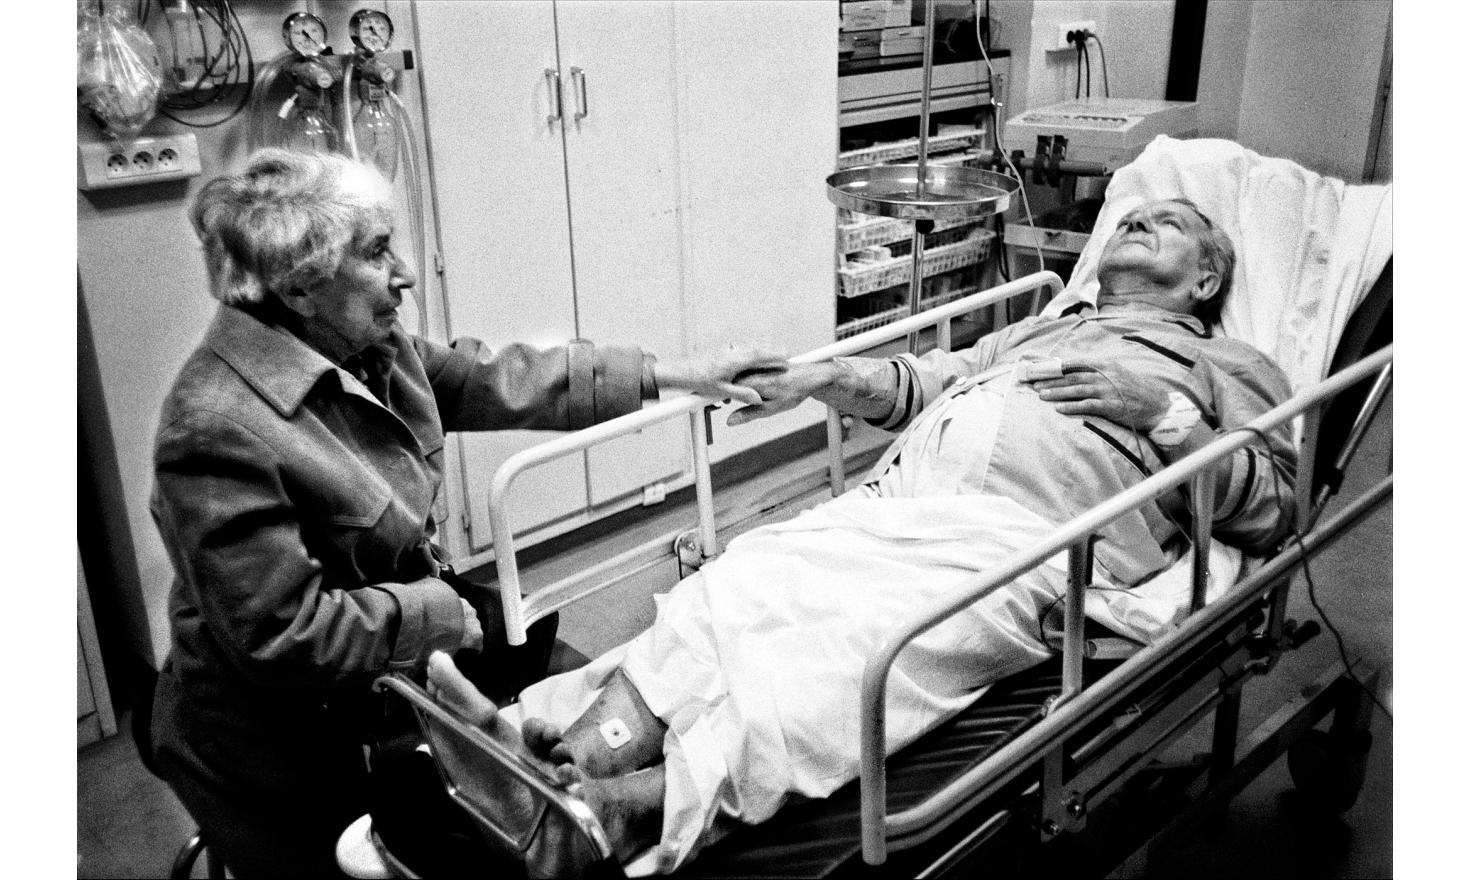 The call from the hospital was brief. My father was hospitalized. They couldn't keep my mother. In the middle of the night in the emergency room, I photographed the first gesture of tenderness that I saw between my parents. Orsay, october 1999.